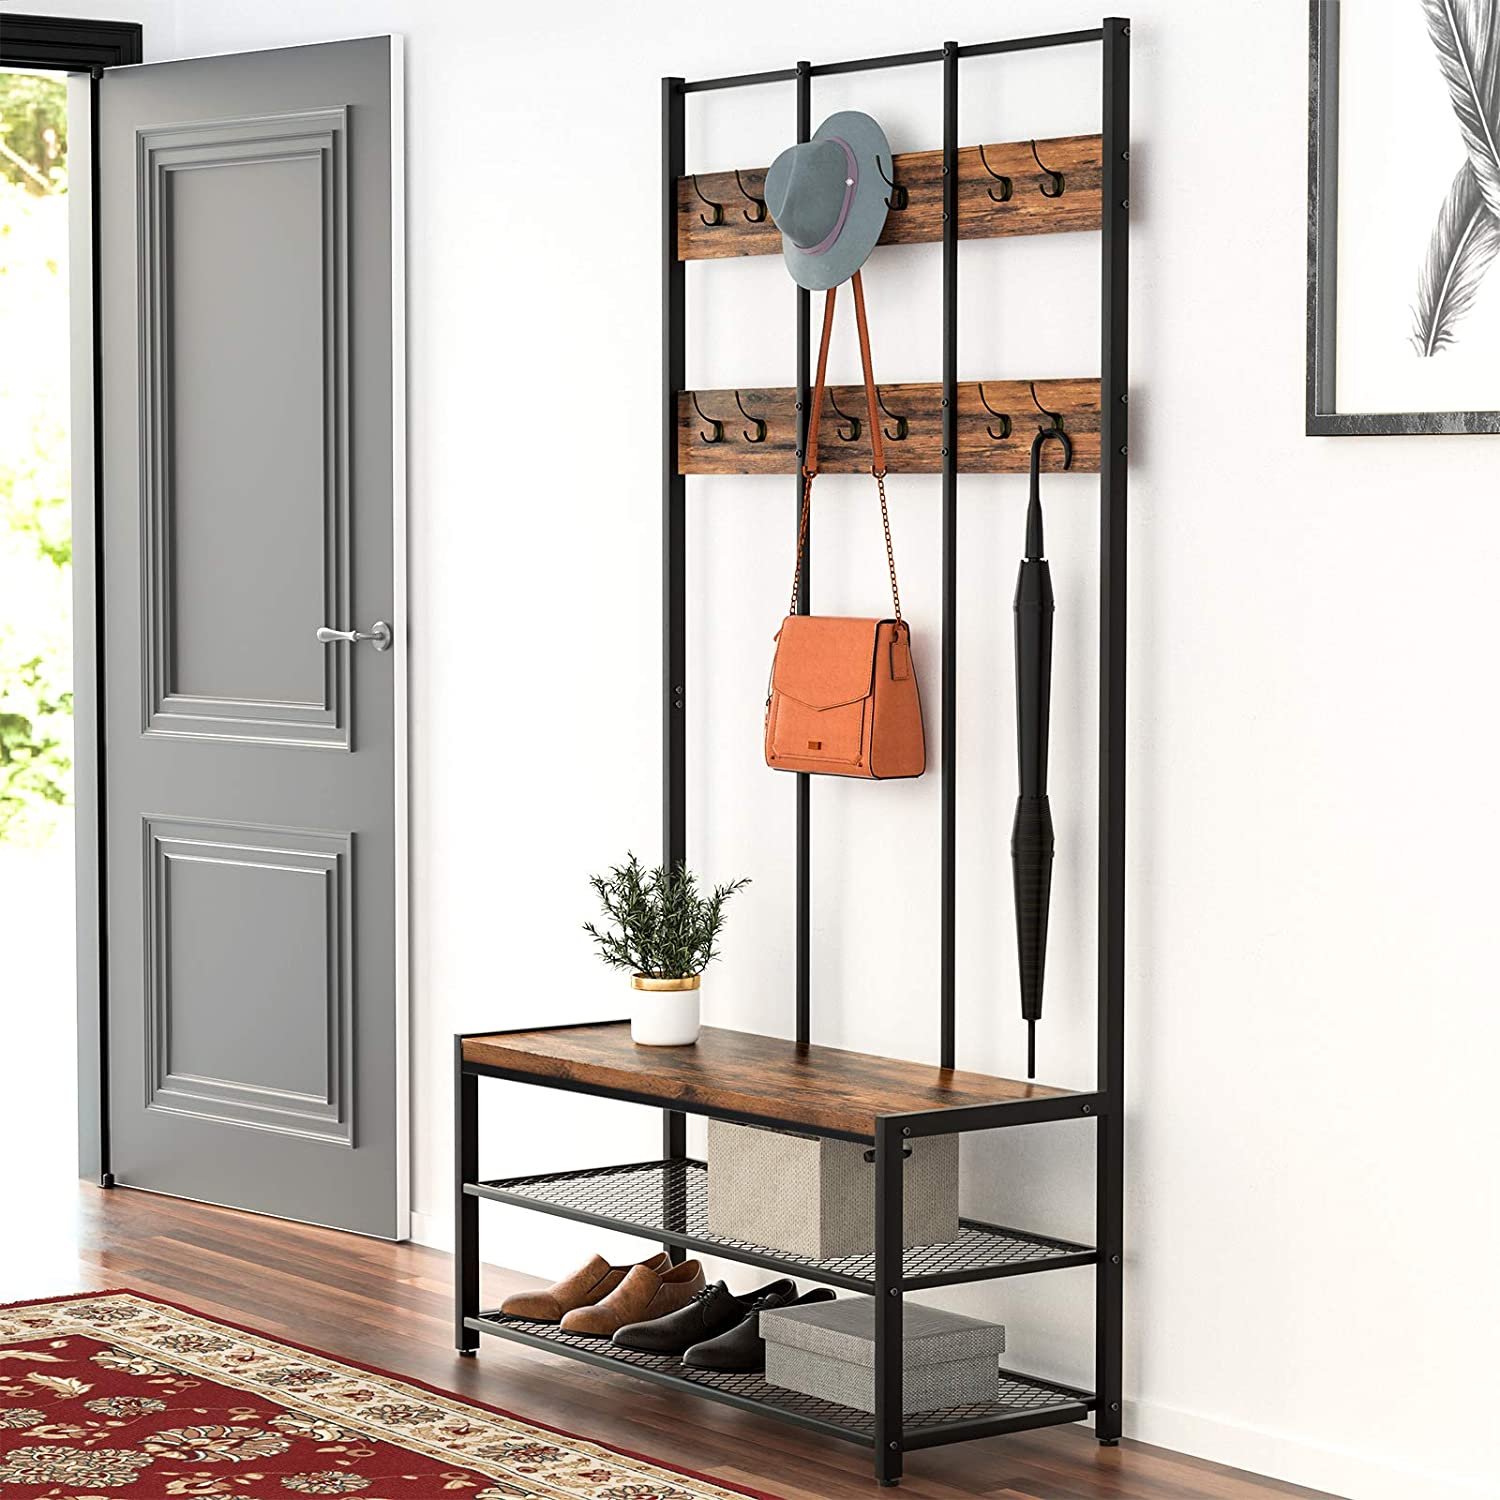 Shop hawkinswoodshop.com for discounted solid wood & metal modern, traditional, contemporary, custom & farmhouse furniture including our Industrial Large Coat Rack Stand. Ask about our free nationwide freight delivery or assembly services today.